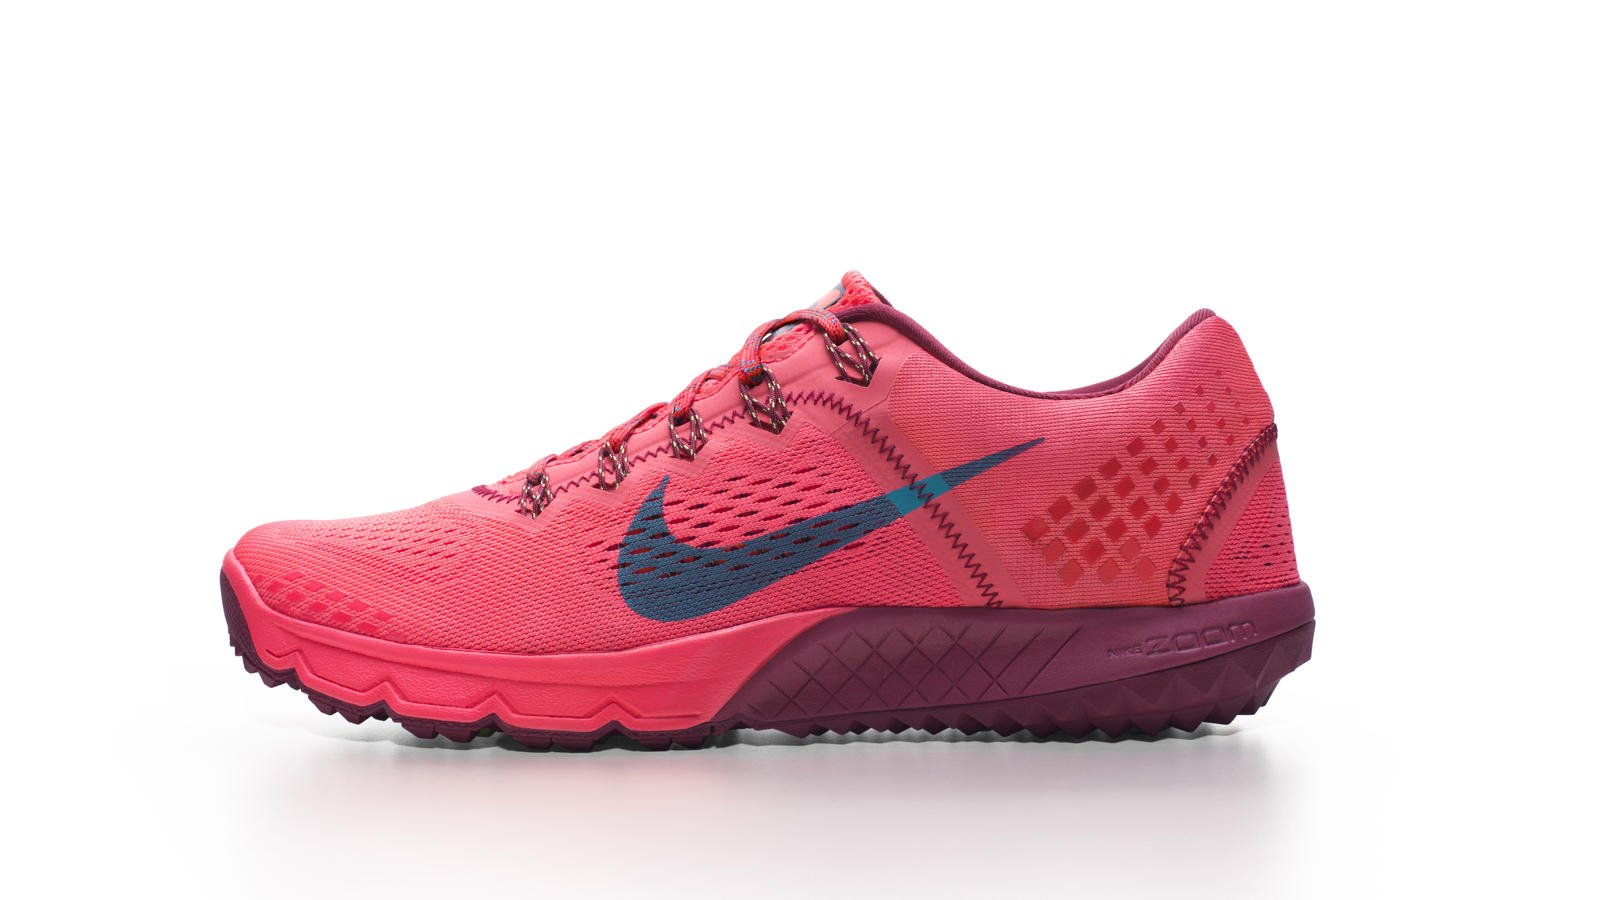 Womens Nike Free TR Fit 3 PRT Cross Training Shoe at Road Runner